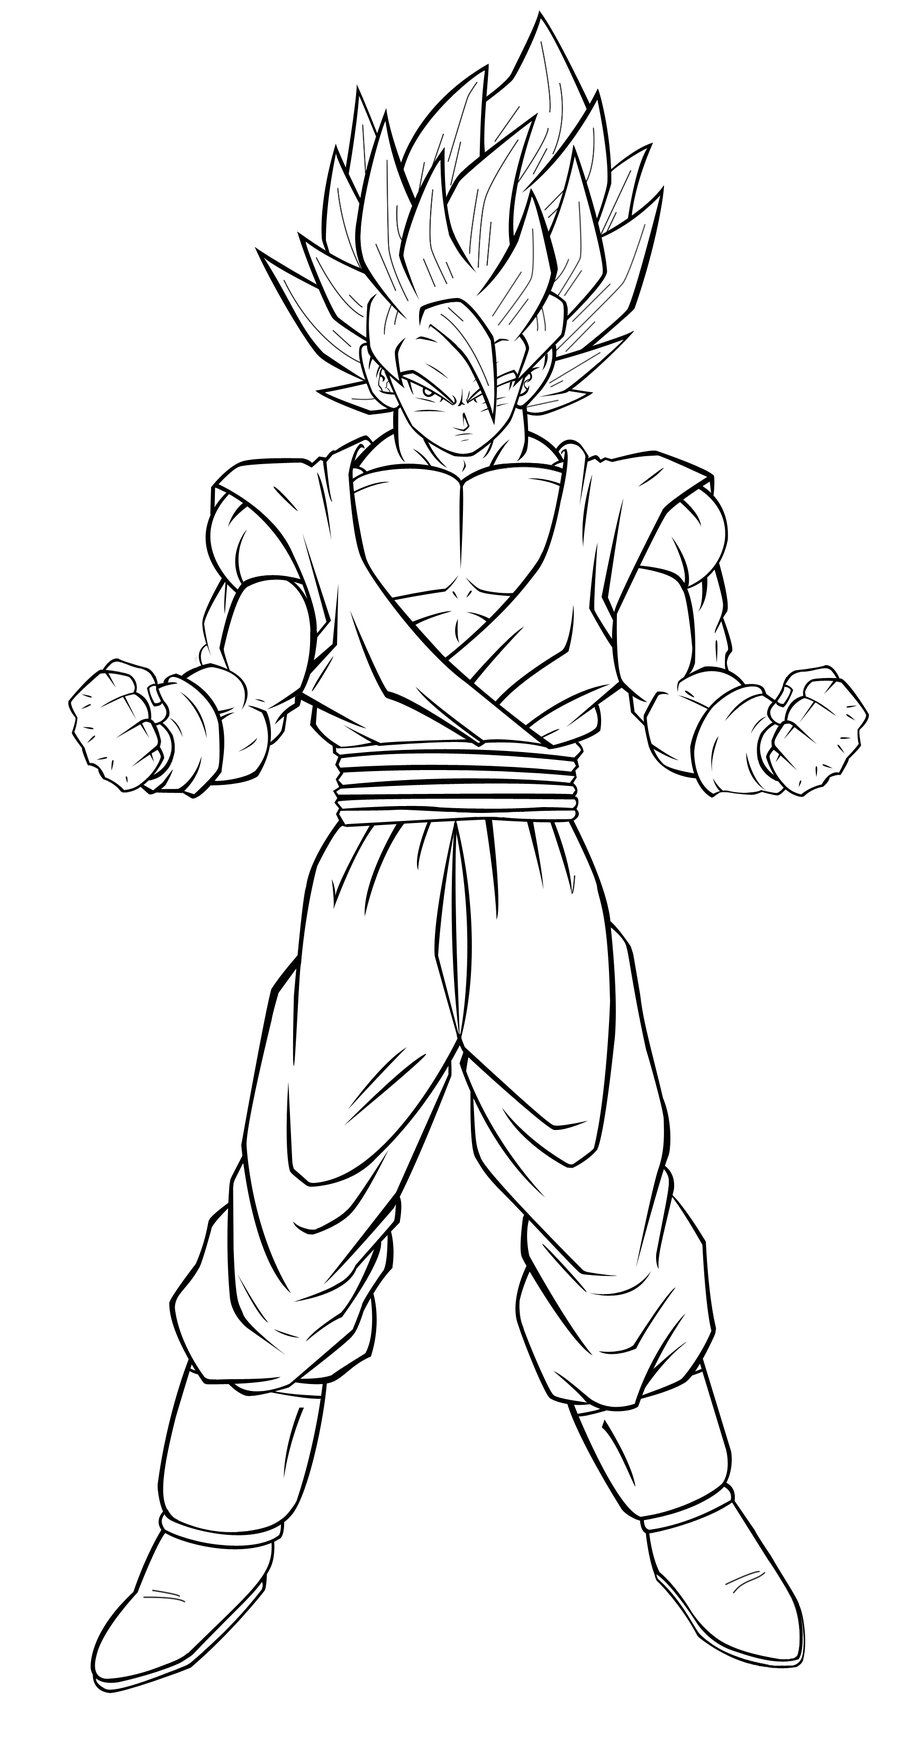 Goku Super Saiyan 4 Coloring Pages Images | Coloriage tout Coloriage Dragon Ball Z Super